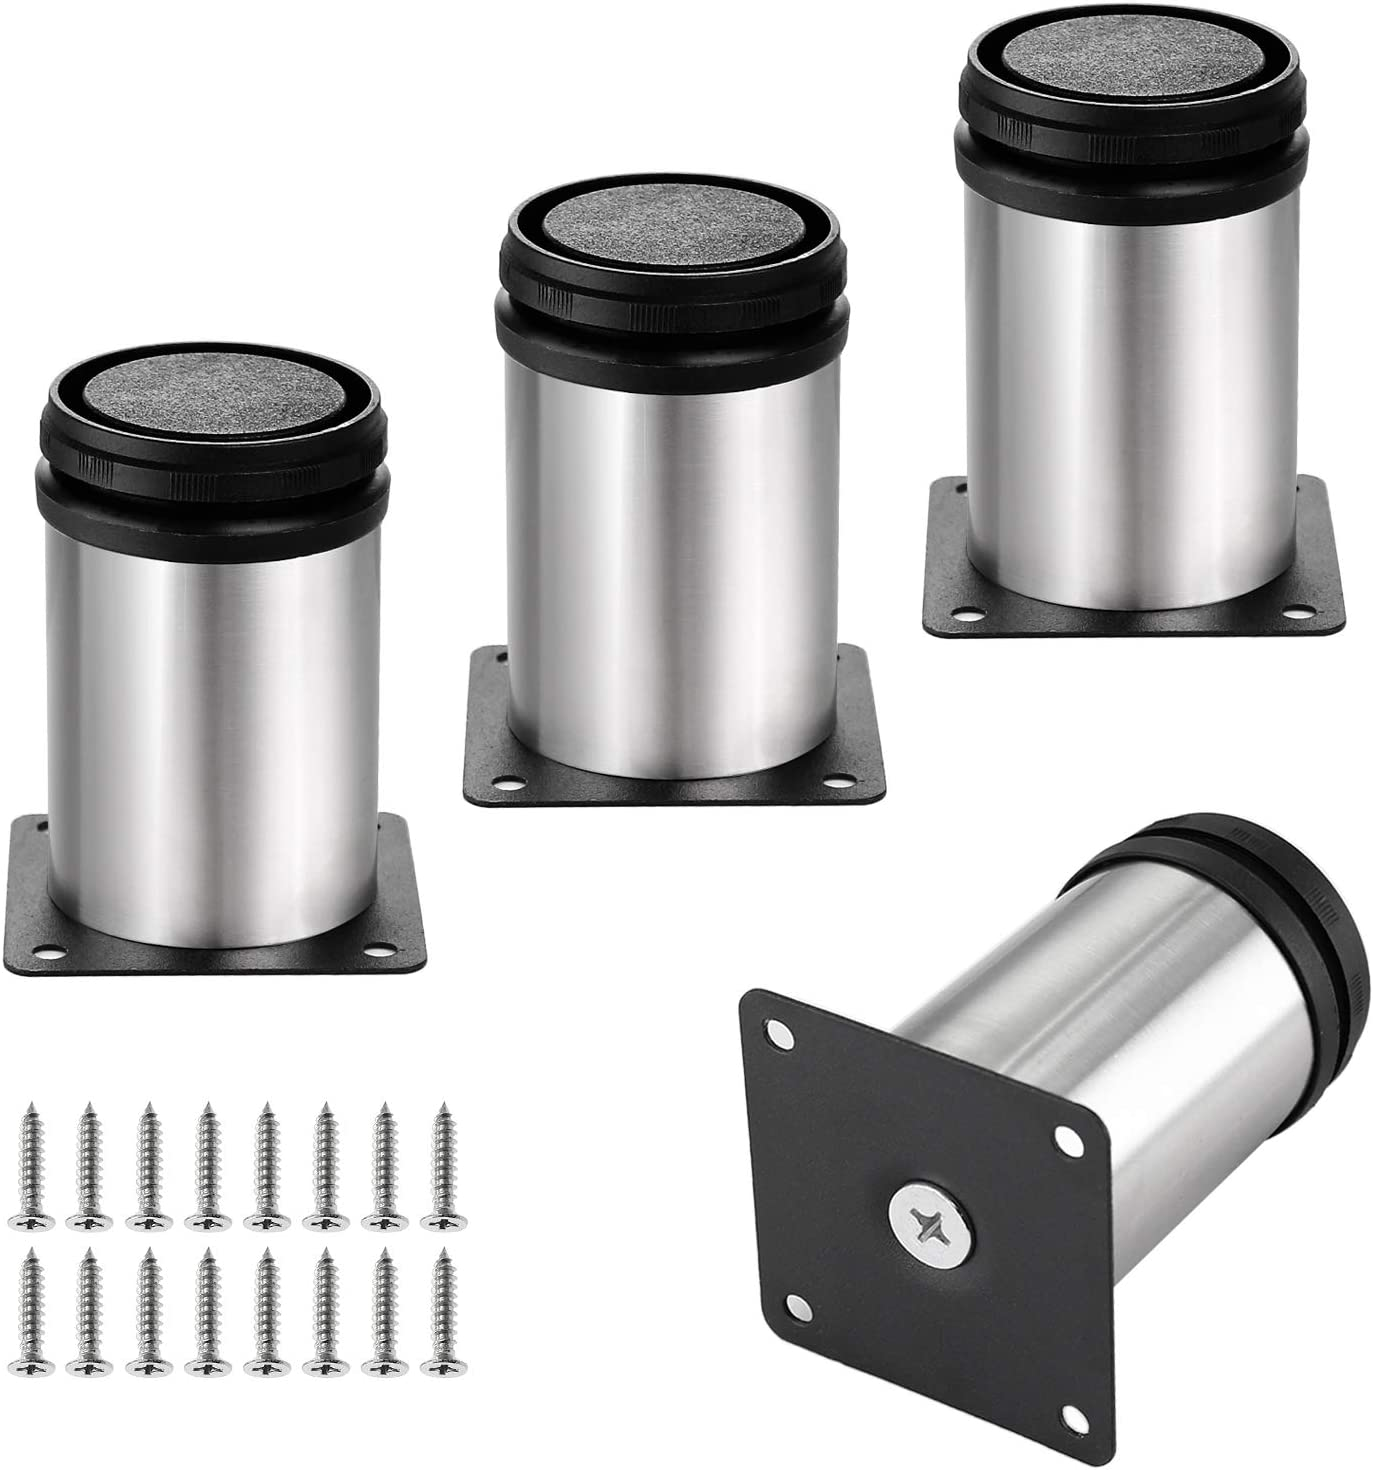 Kyuionty Set of 4 Stainless Steel Furniture Legs 3 Inch, Adjustable Round Cabinet Legs 2